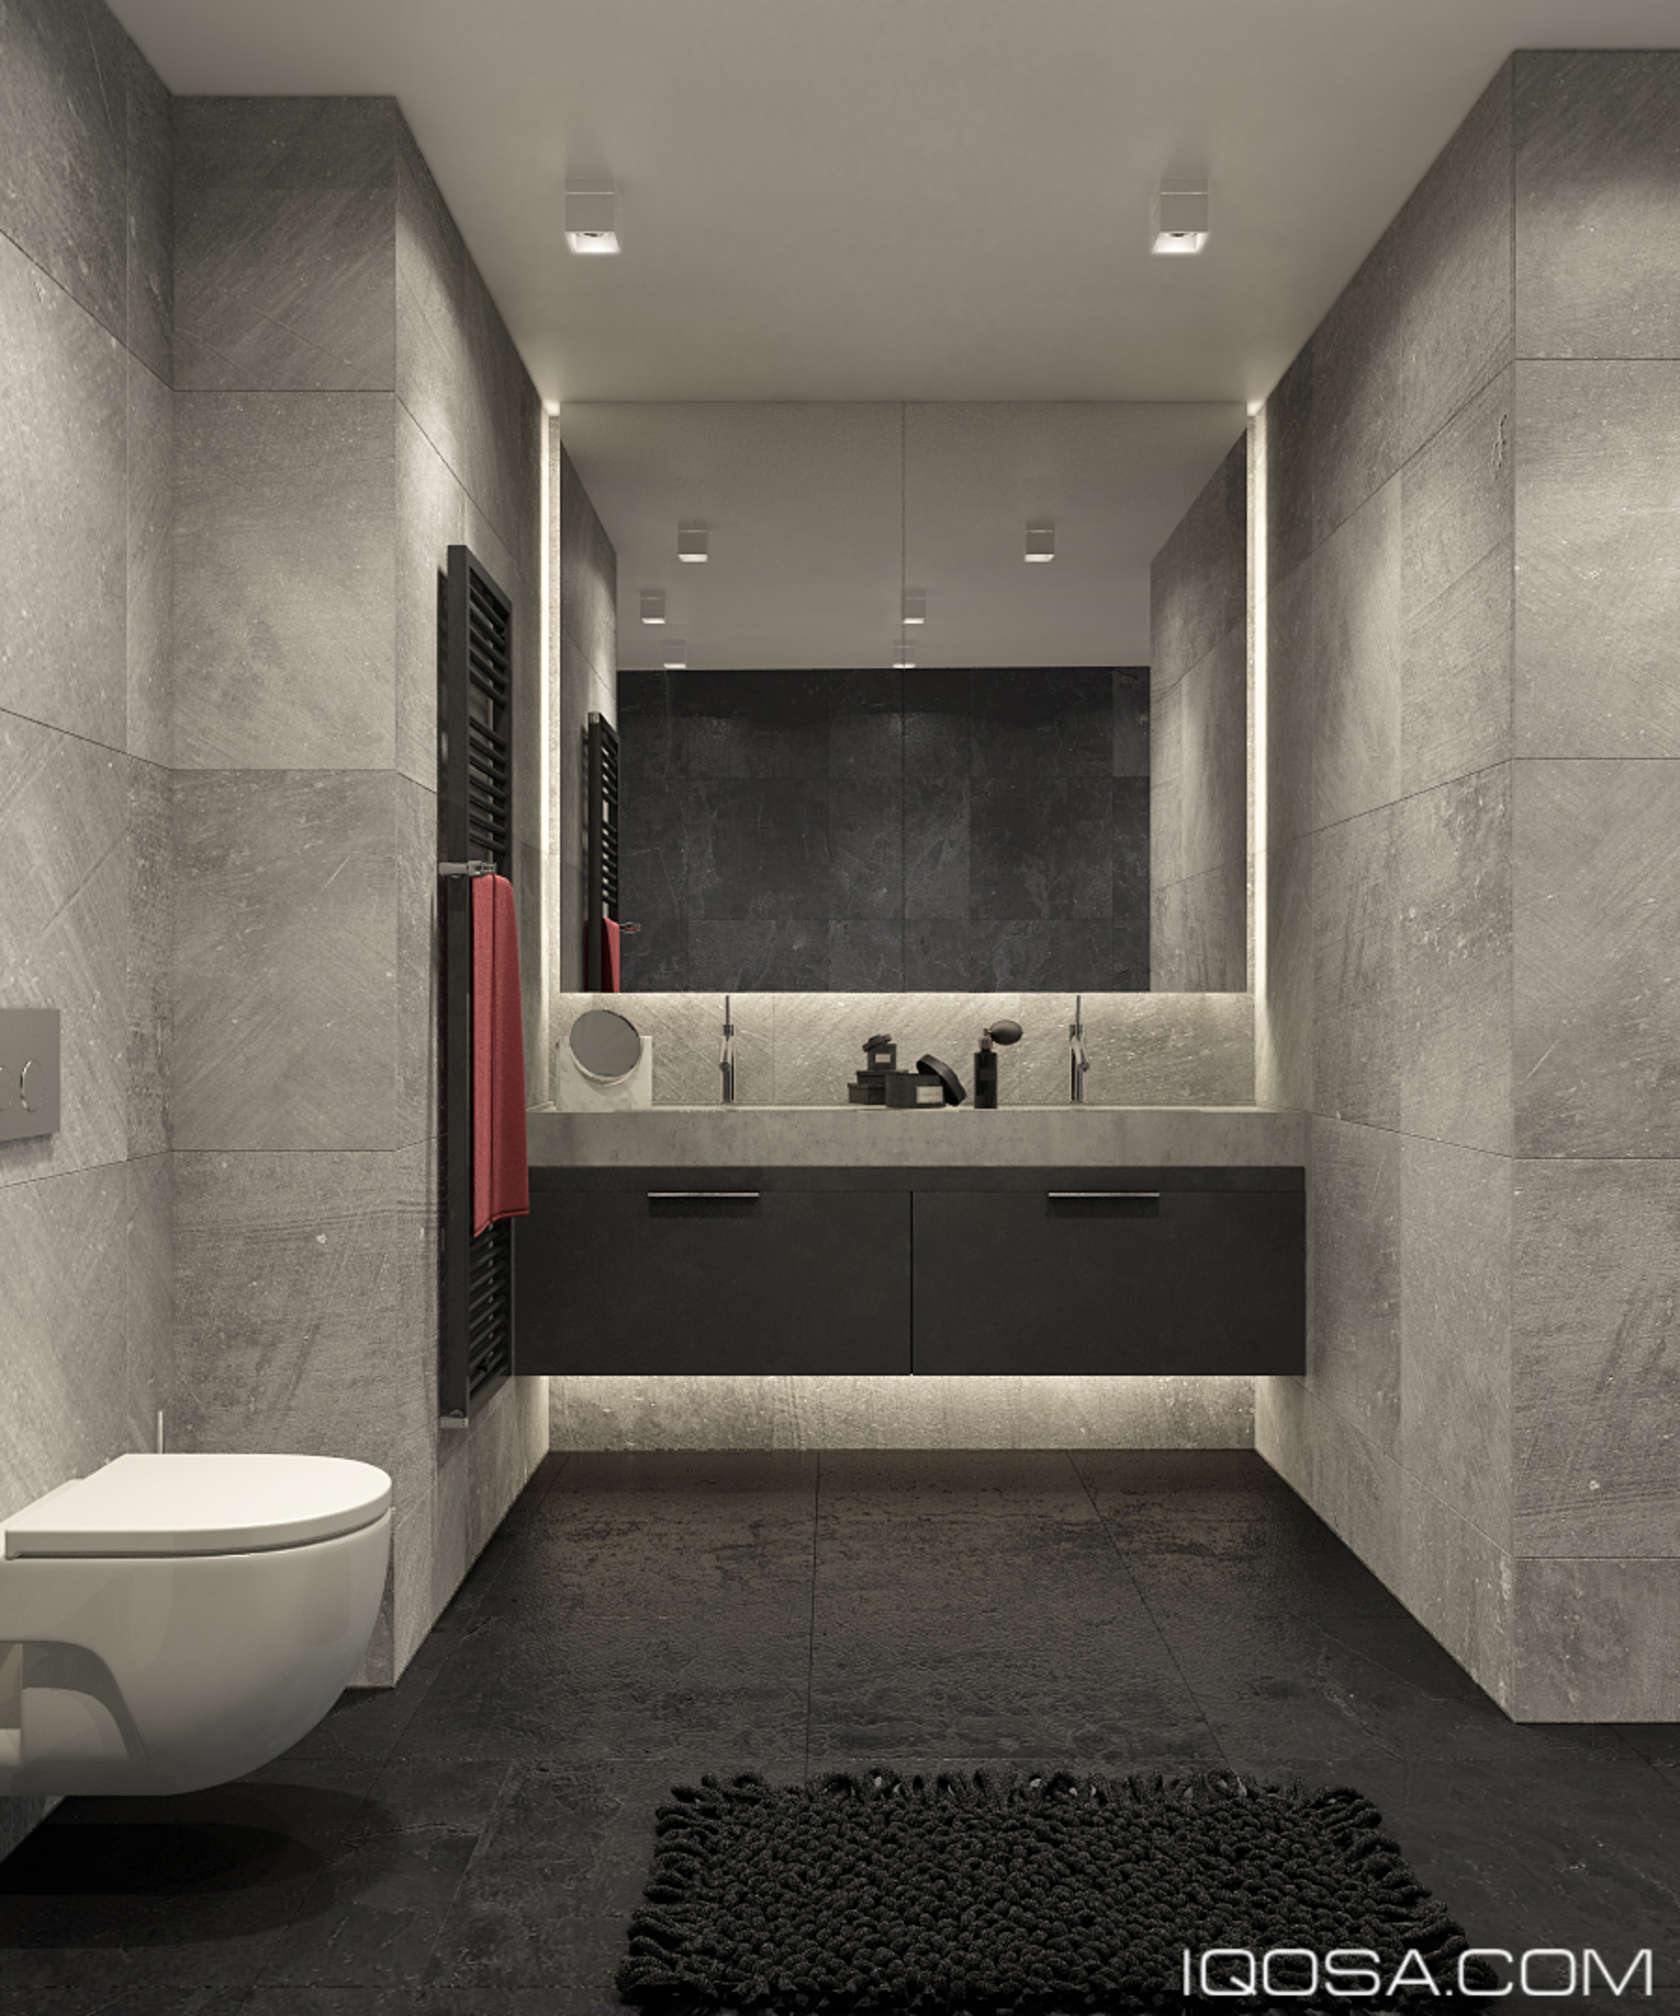 Apartment Bathrooms Ideas Bathroom Designs: Luxury Small Studio Apartment Design Combined Modern And Minimalist Style Decor Looks Stunning